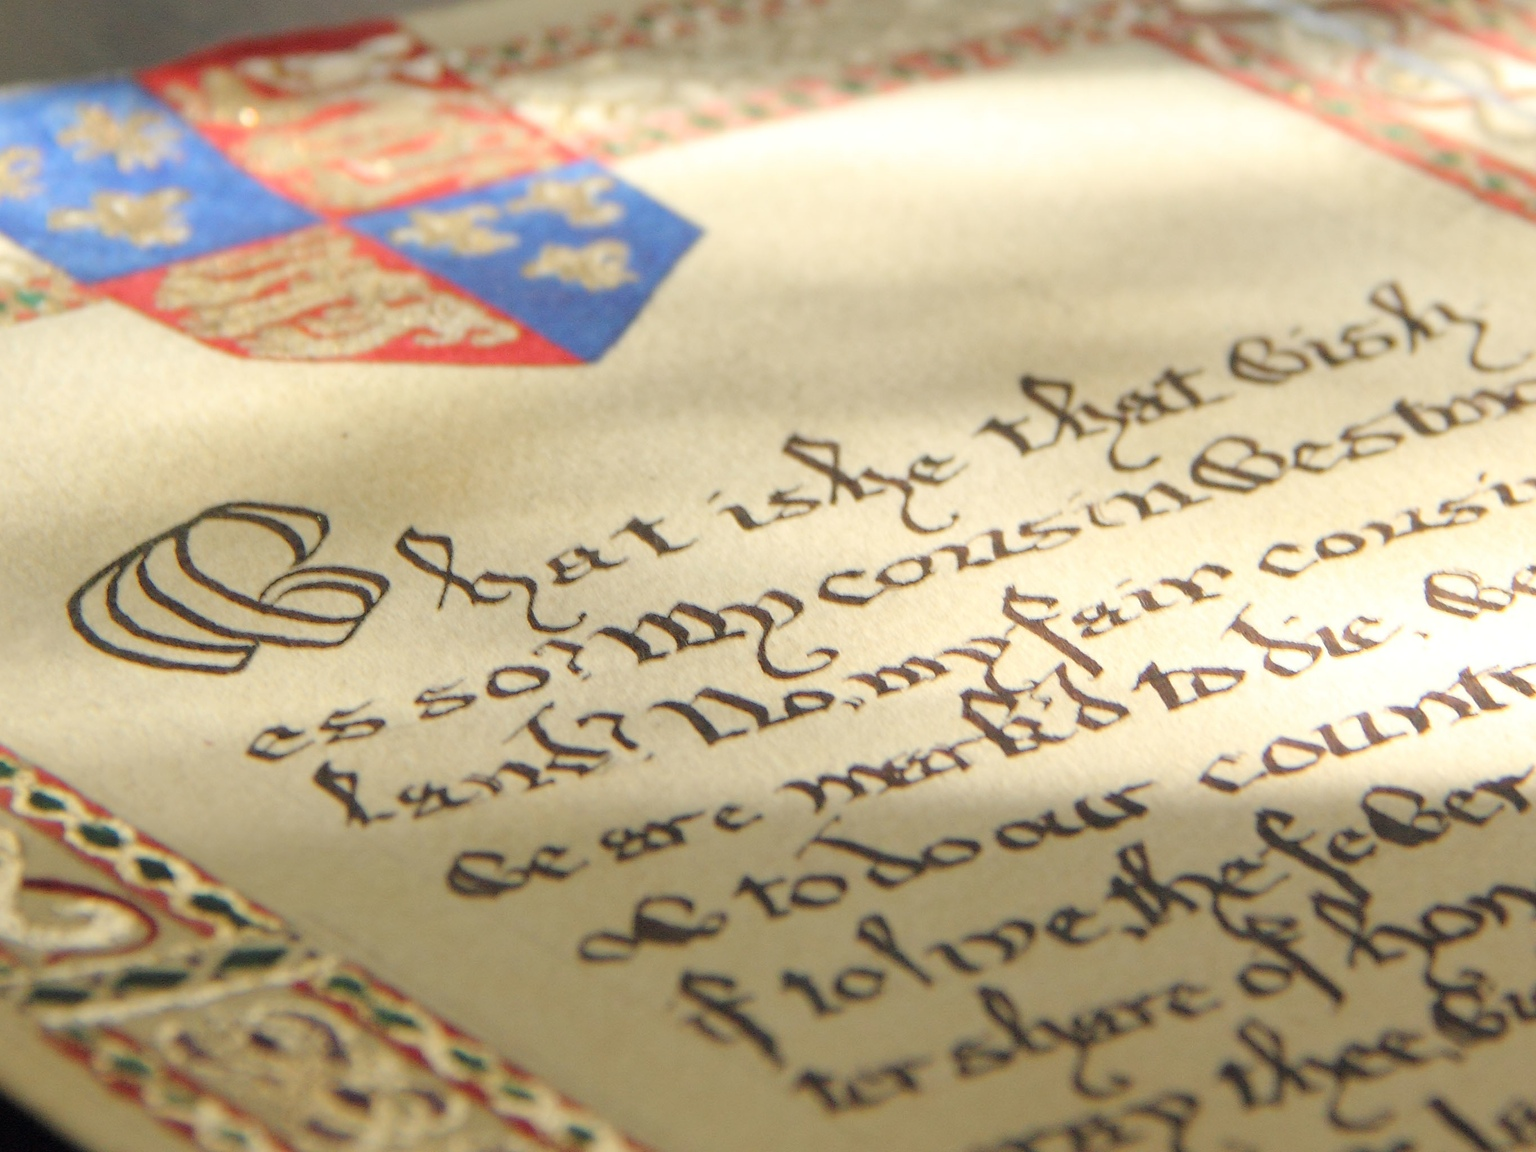 Kickstarter project. Scroll of Shakespeare's  Saint Crispin's Day  speech. Watercolor paper, watercolor paint, gold and silver leaf, calligraphy. 2013.